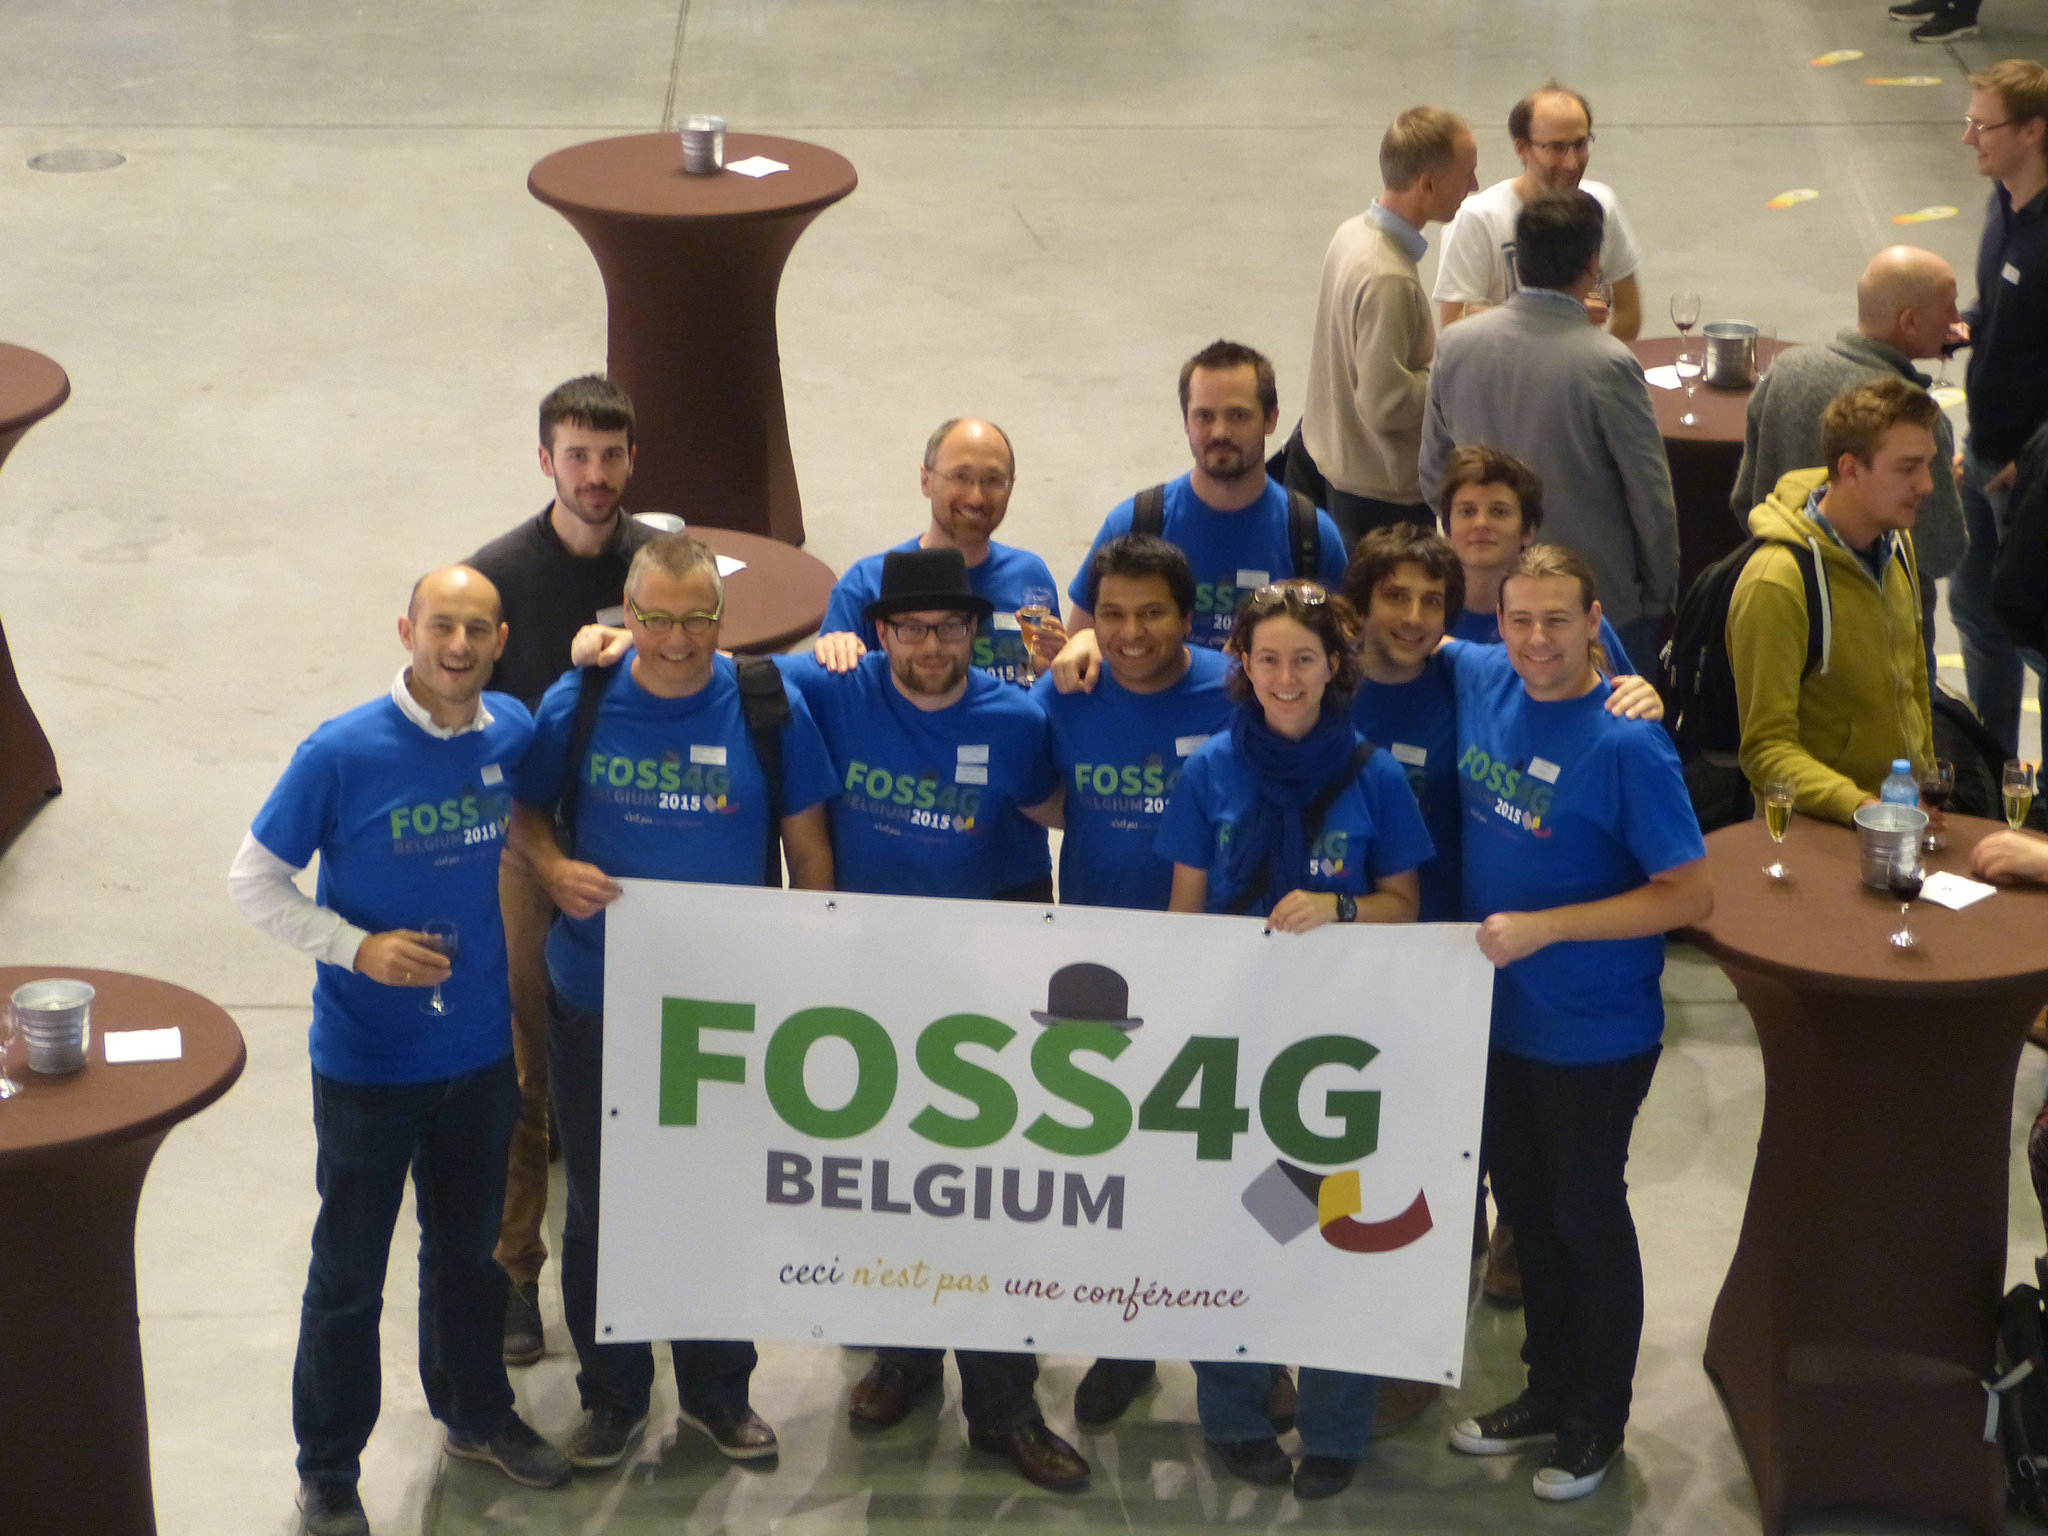 The first FOSS4G Belgium, October 2015